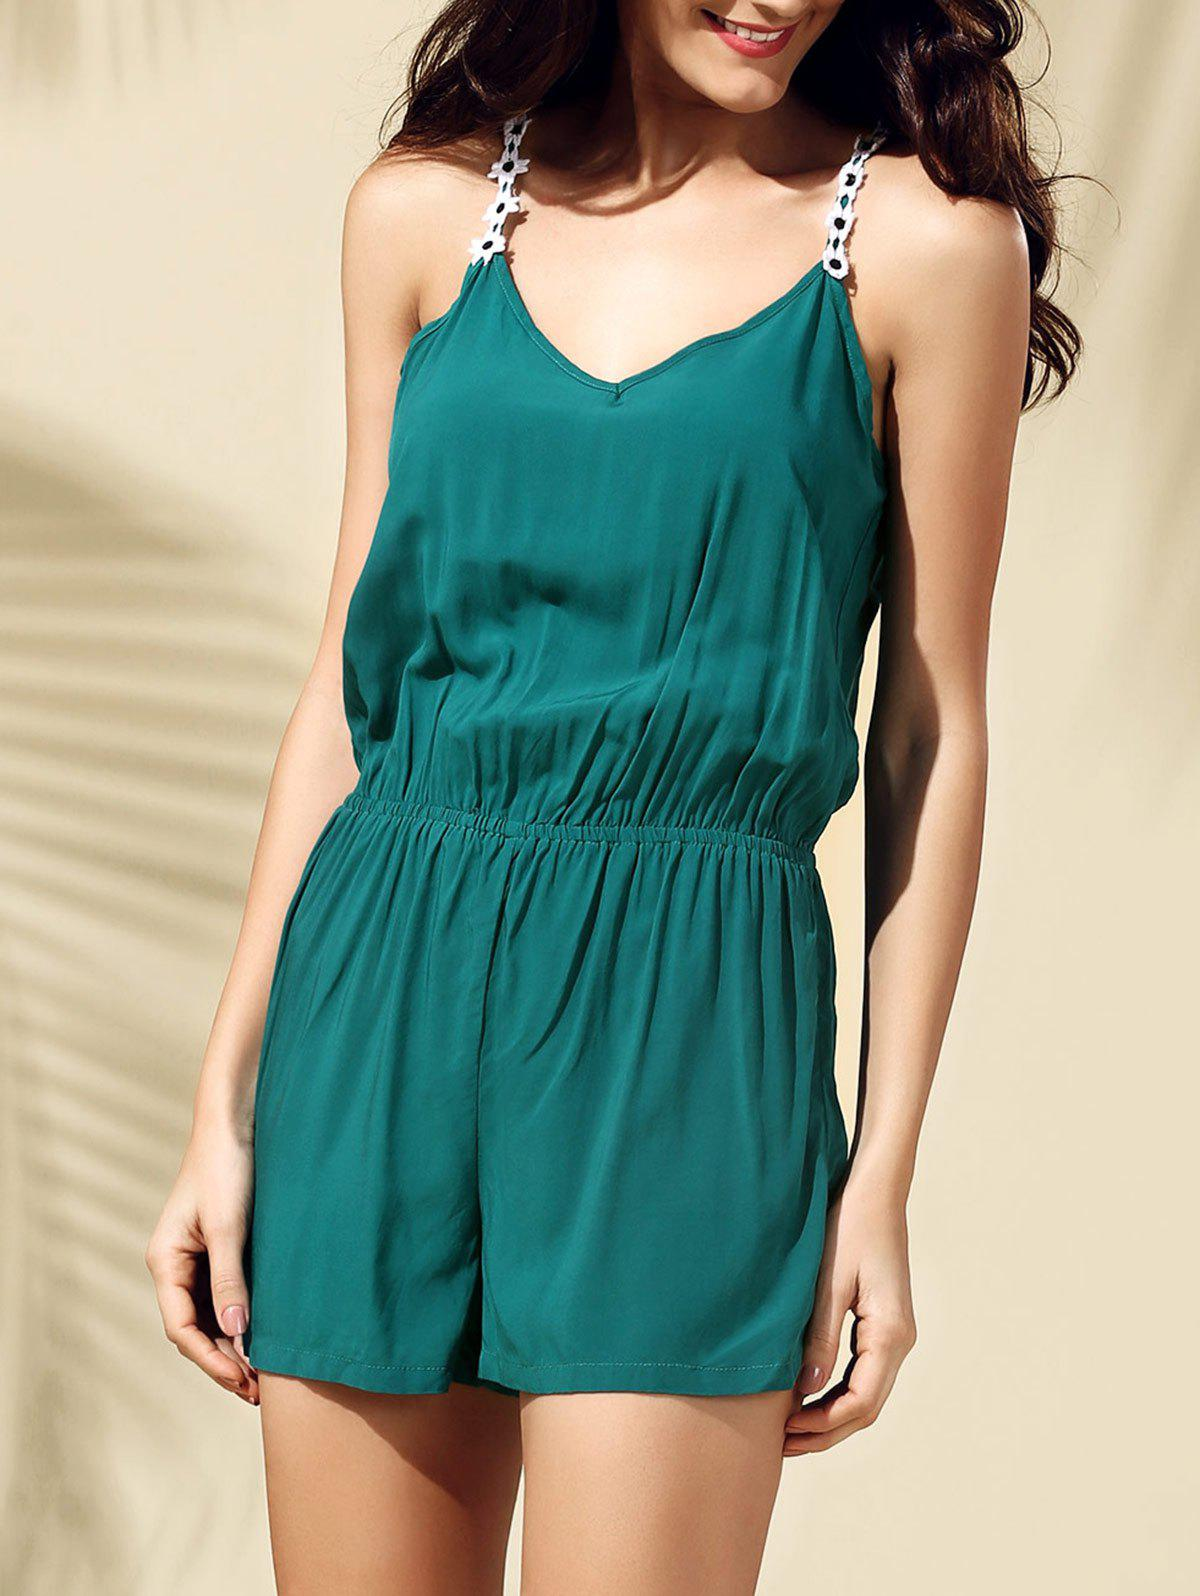 Casual Backless Laciness Women's Romper - BLACKISH GREEN M